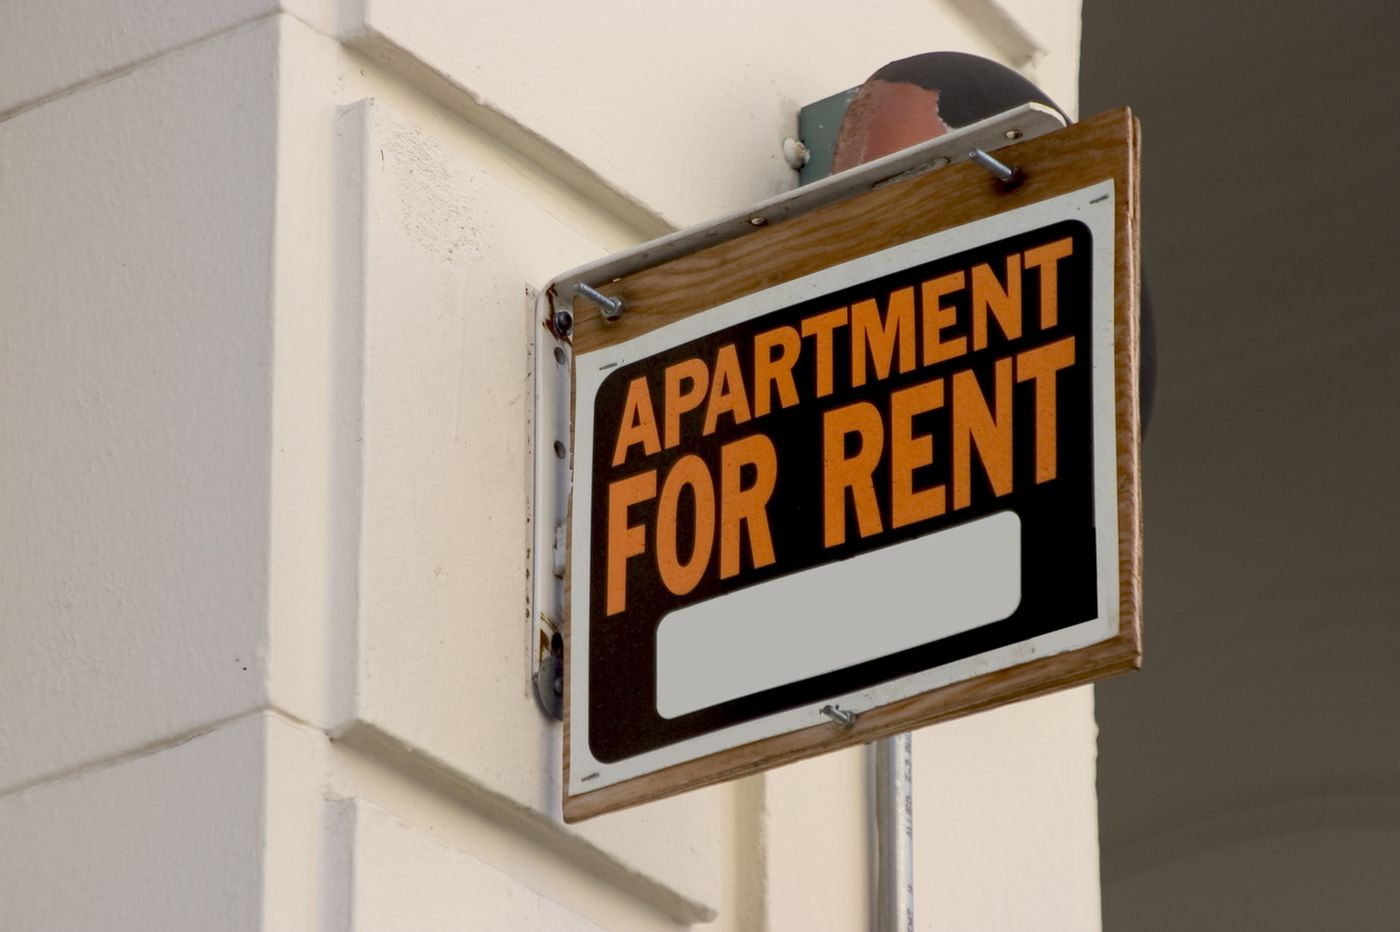 Too many Philly landlords shutting the door on fair housing | Editorial